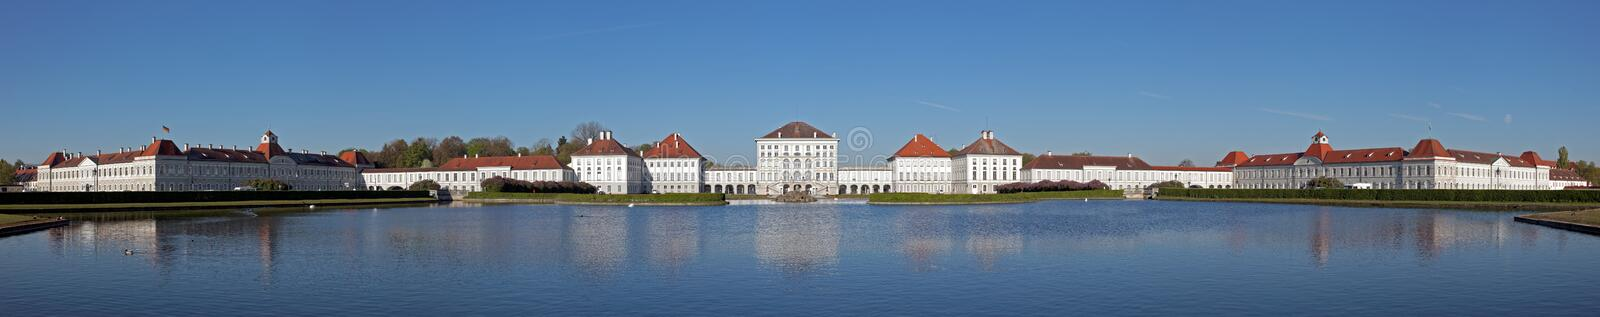 Panorama of Nymphenburg Castle in Munich royalty free stock images